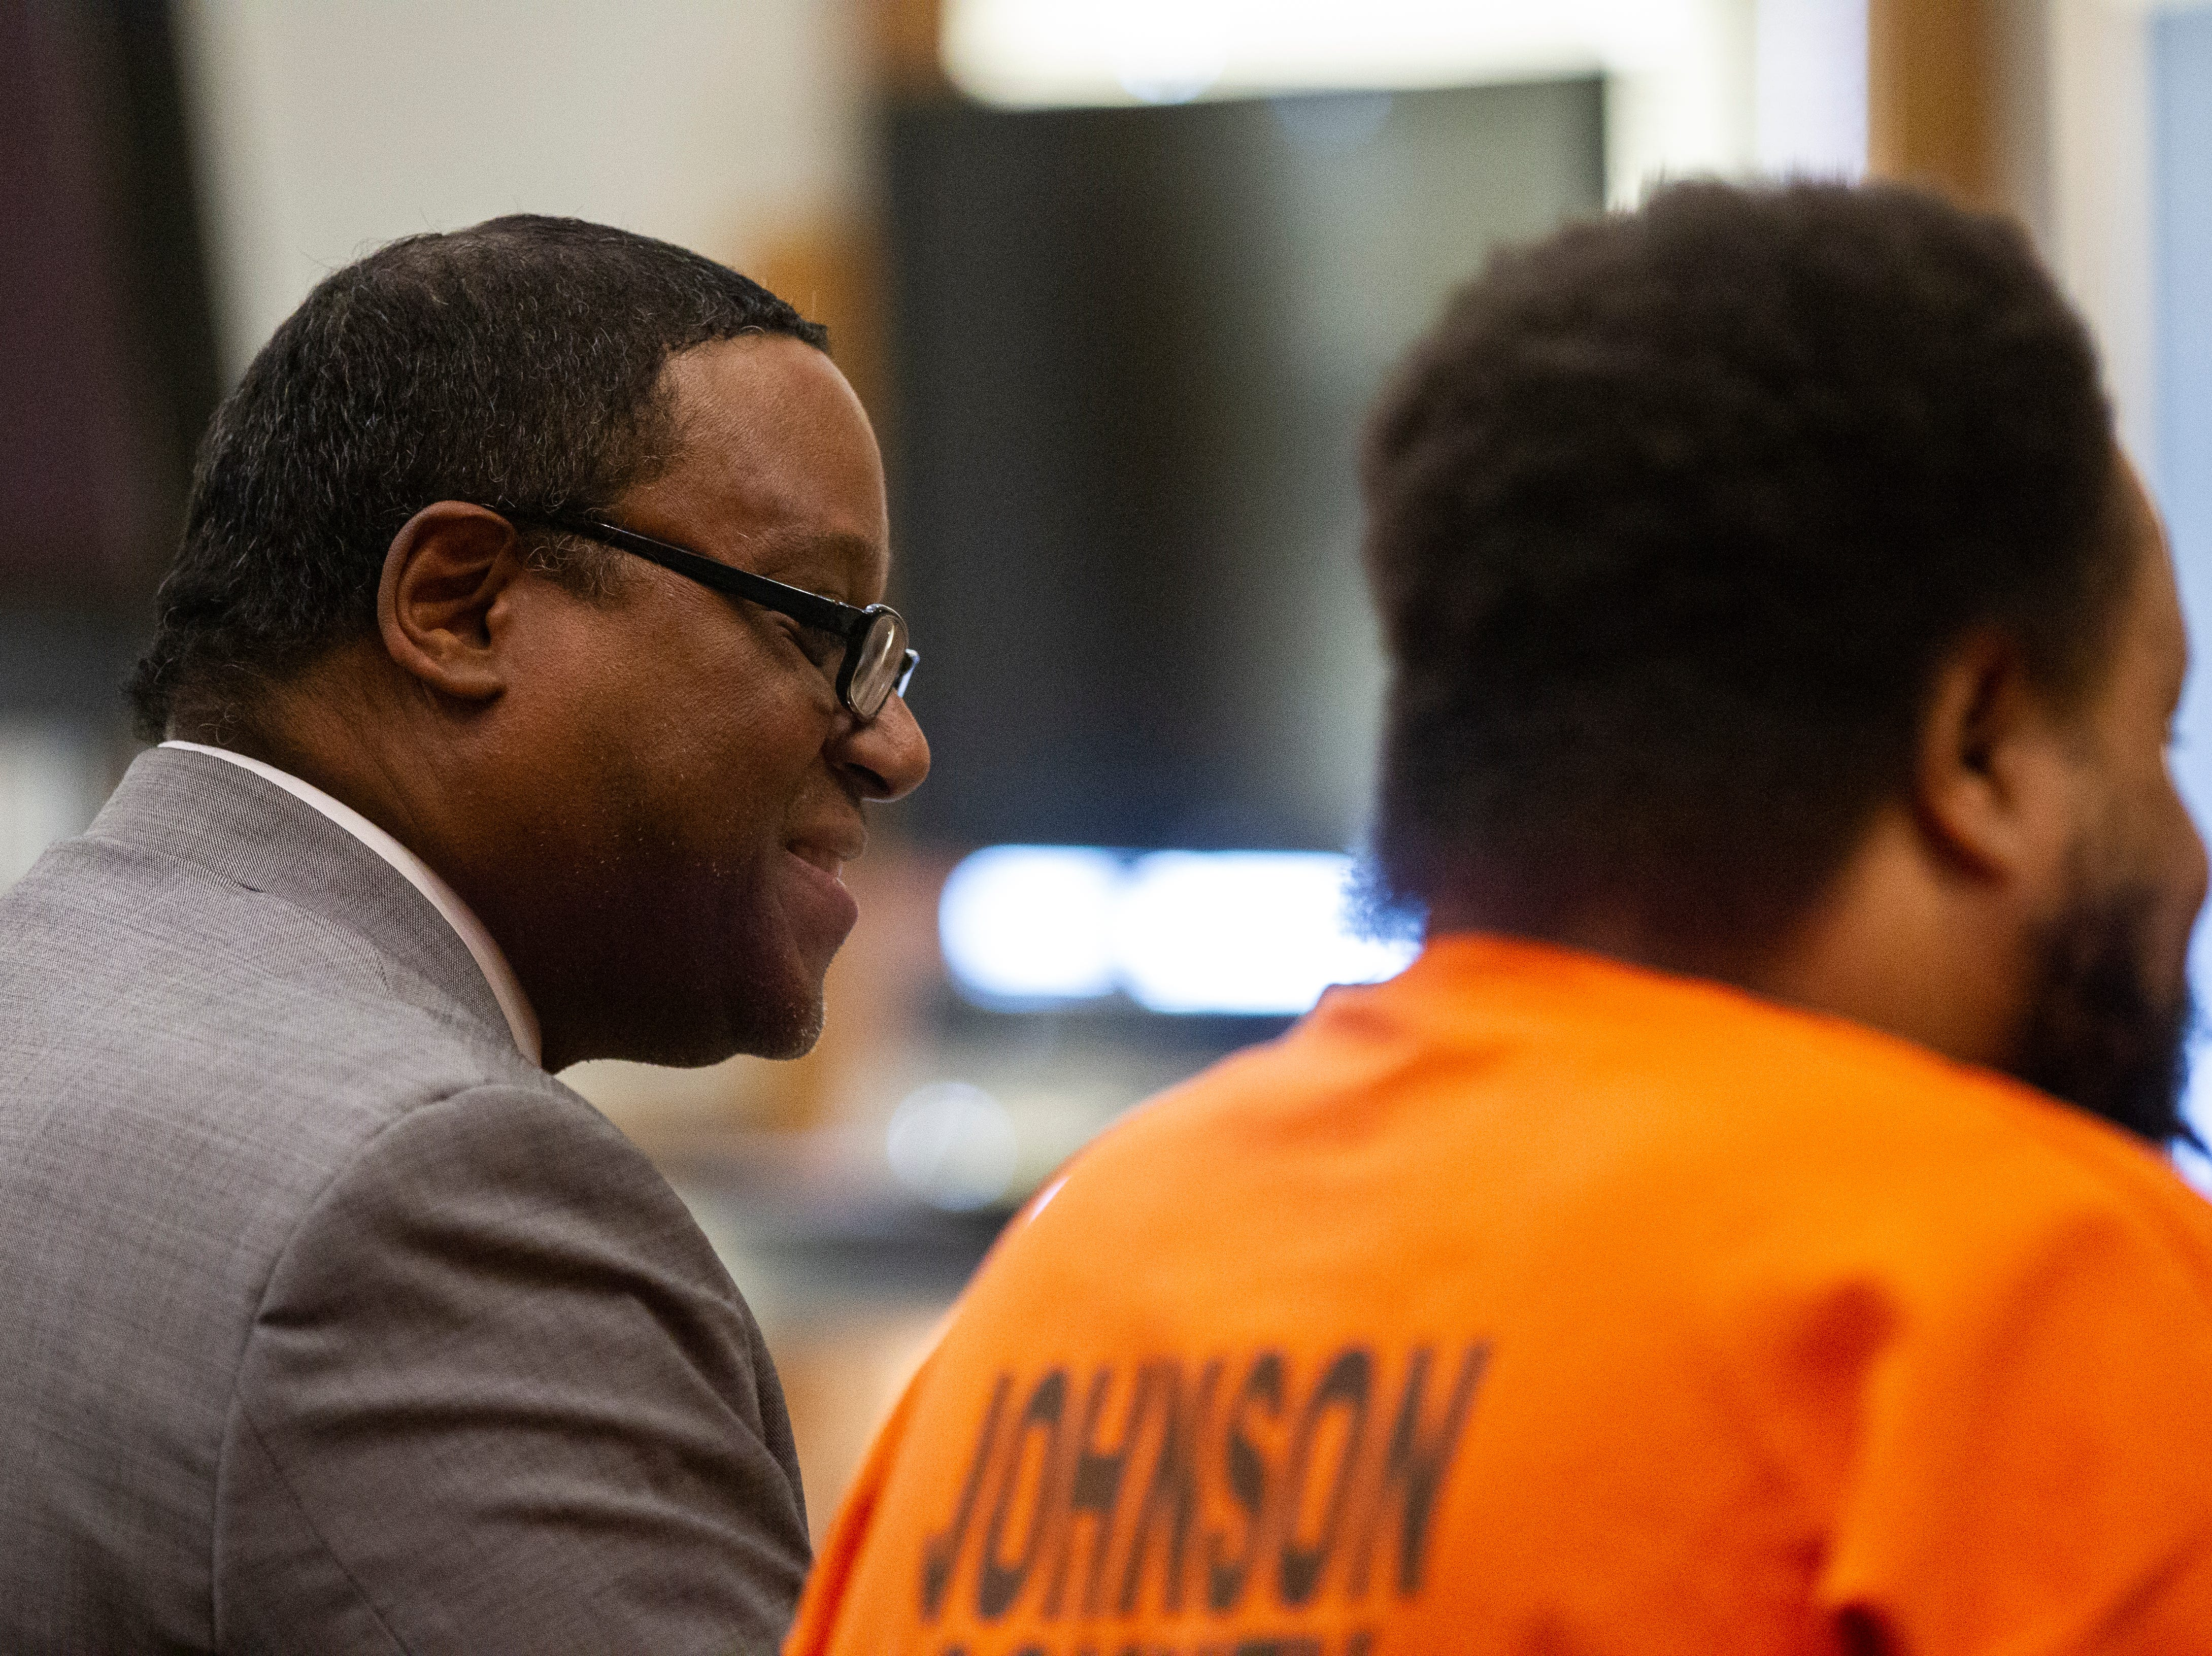 Doug Davis talks with Curtis Jones during a pre-trial hearing on Wednesday, Sept. 26, 2018, at the Johnson County Courthouse in Iowa City.